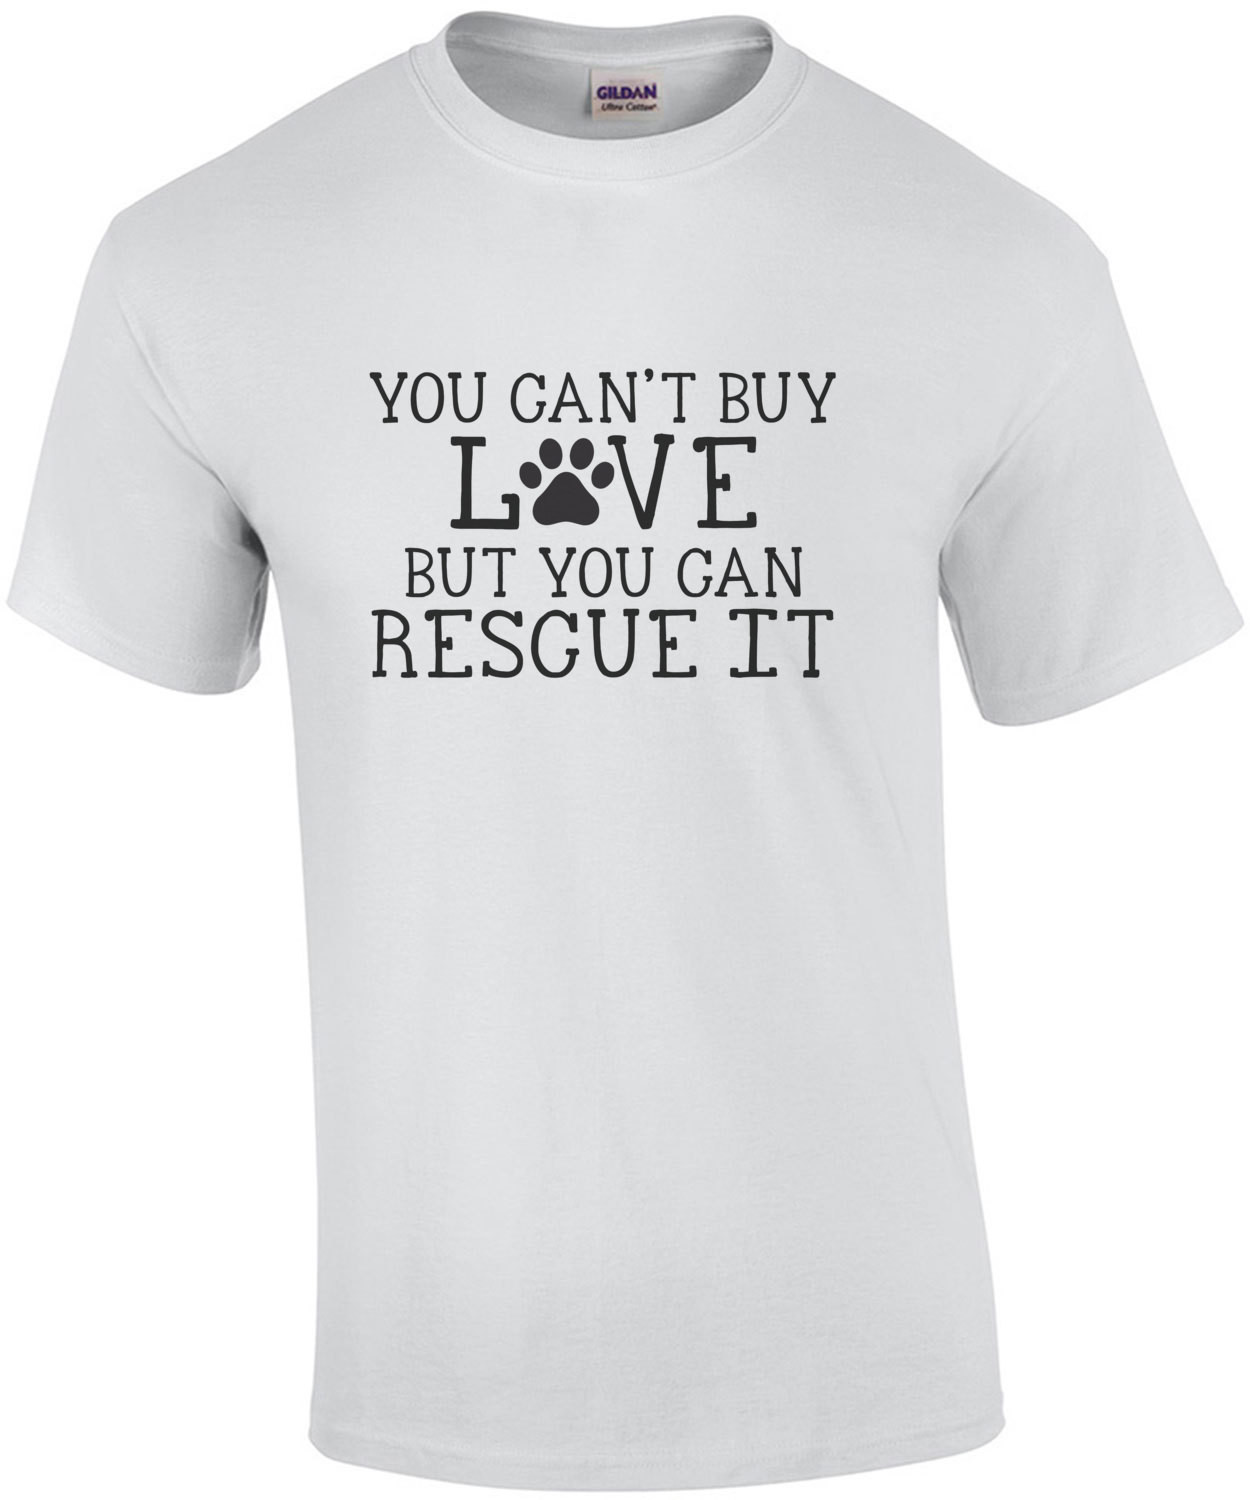 You can't buy love but you can rescue it - rescue dog t-shirt